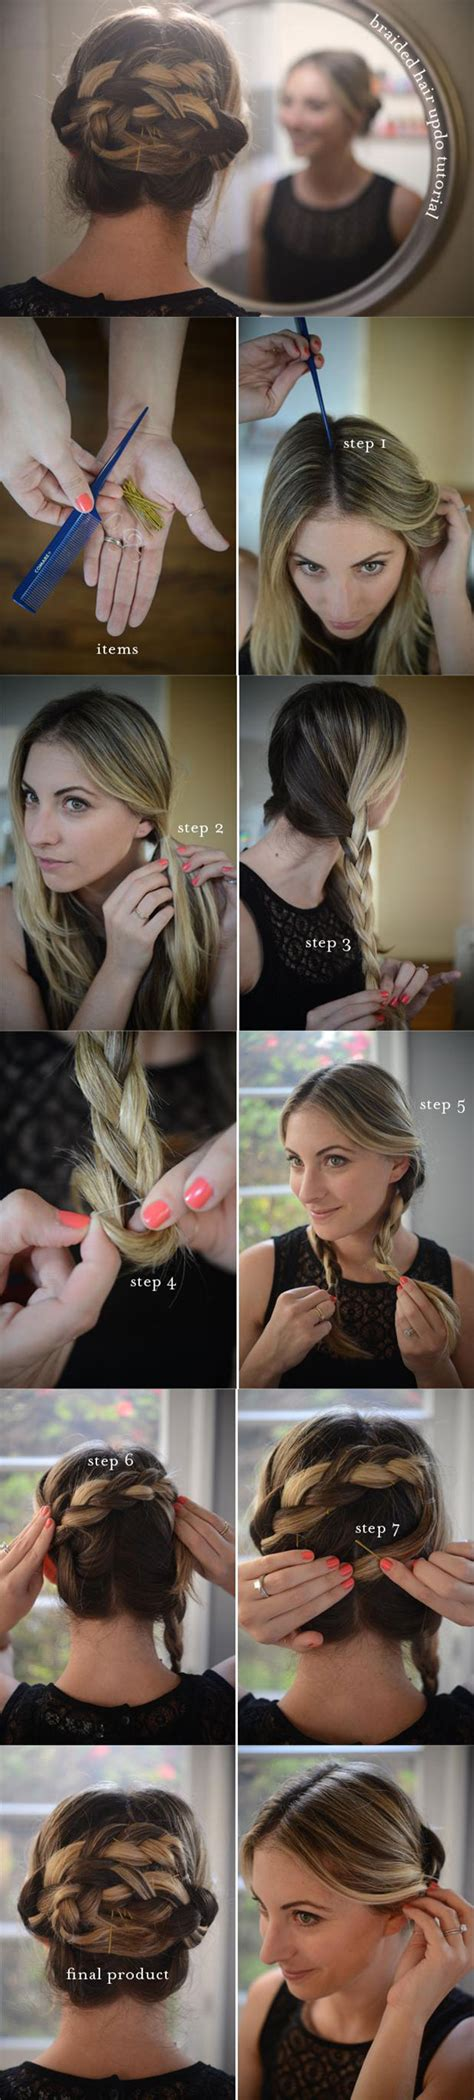 Diy Hairstyles Step By Step Tumblr | 9 pretty diy hairstyles with step by step tutorials